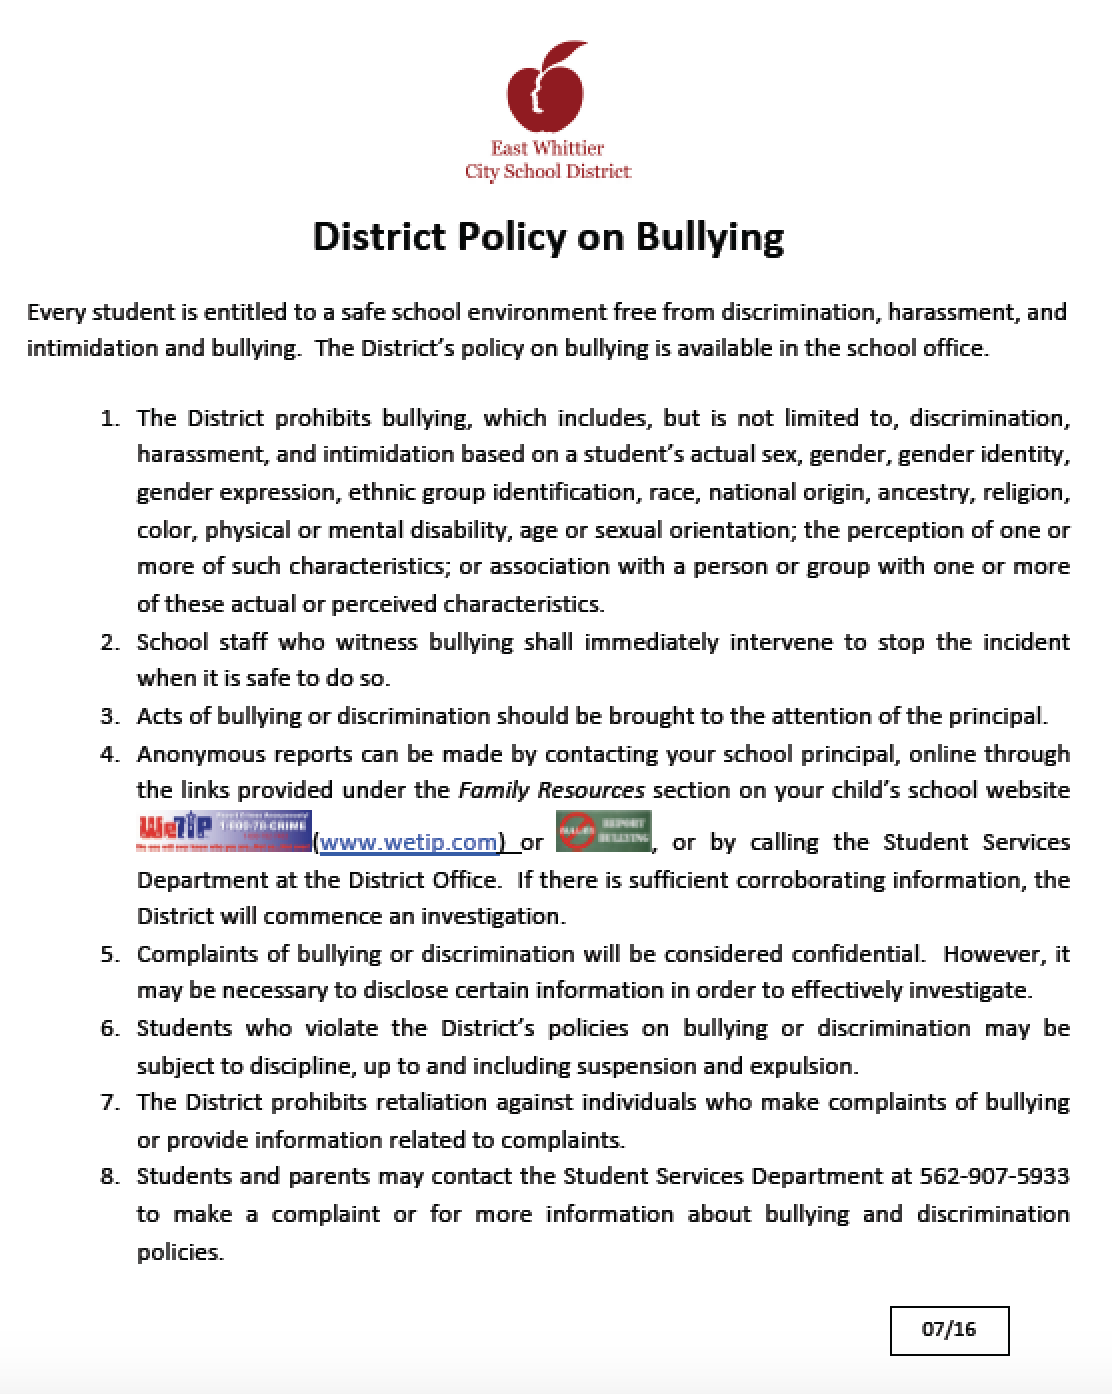 EWCSD district policy on bullying in English